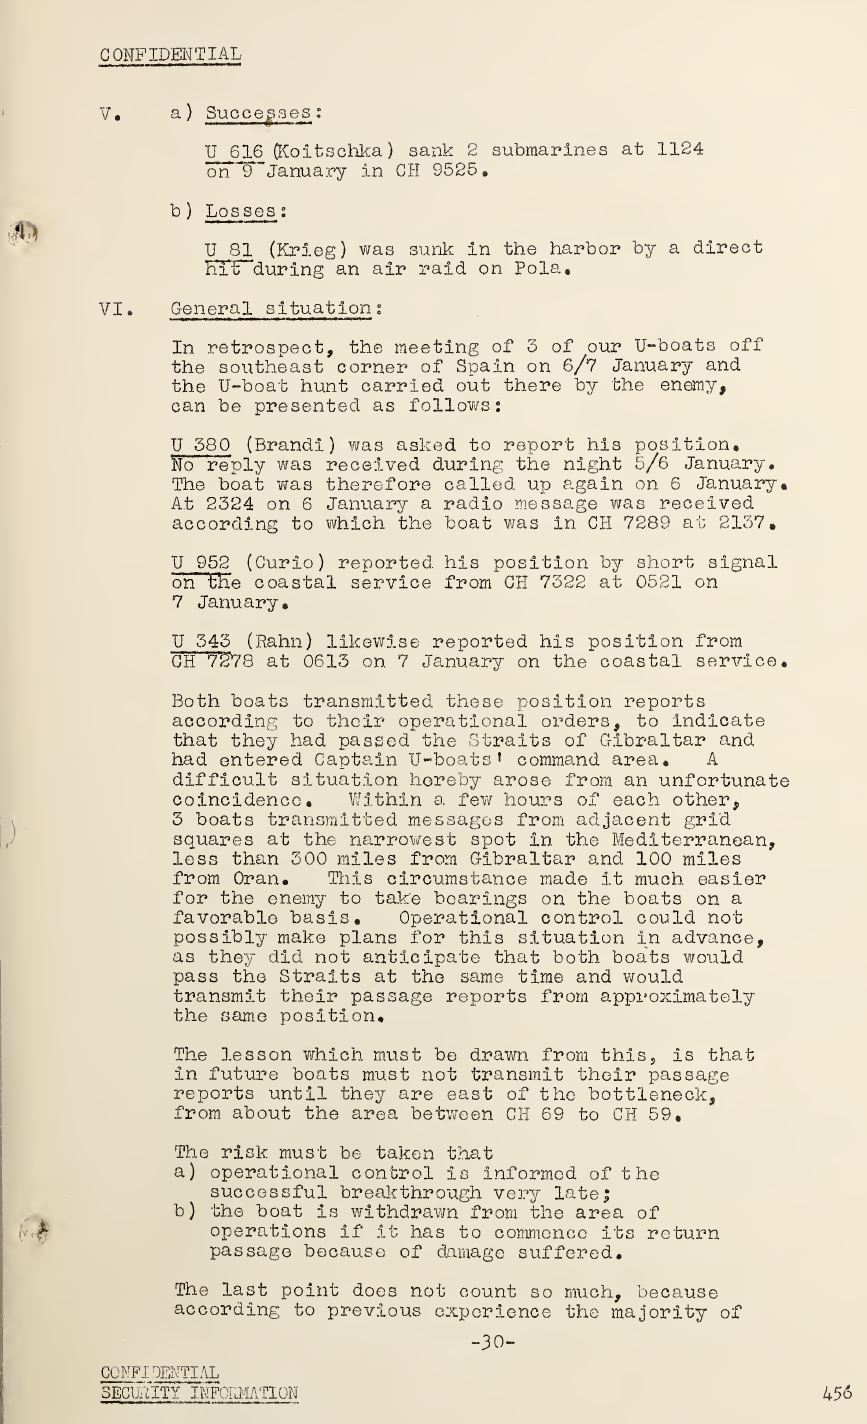 War Diary of Captain U-Boats Sample Entry 6